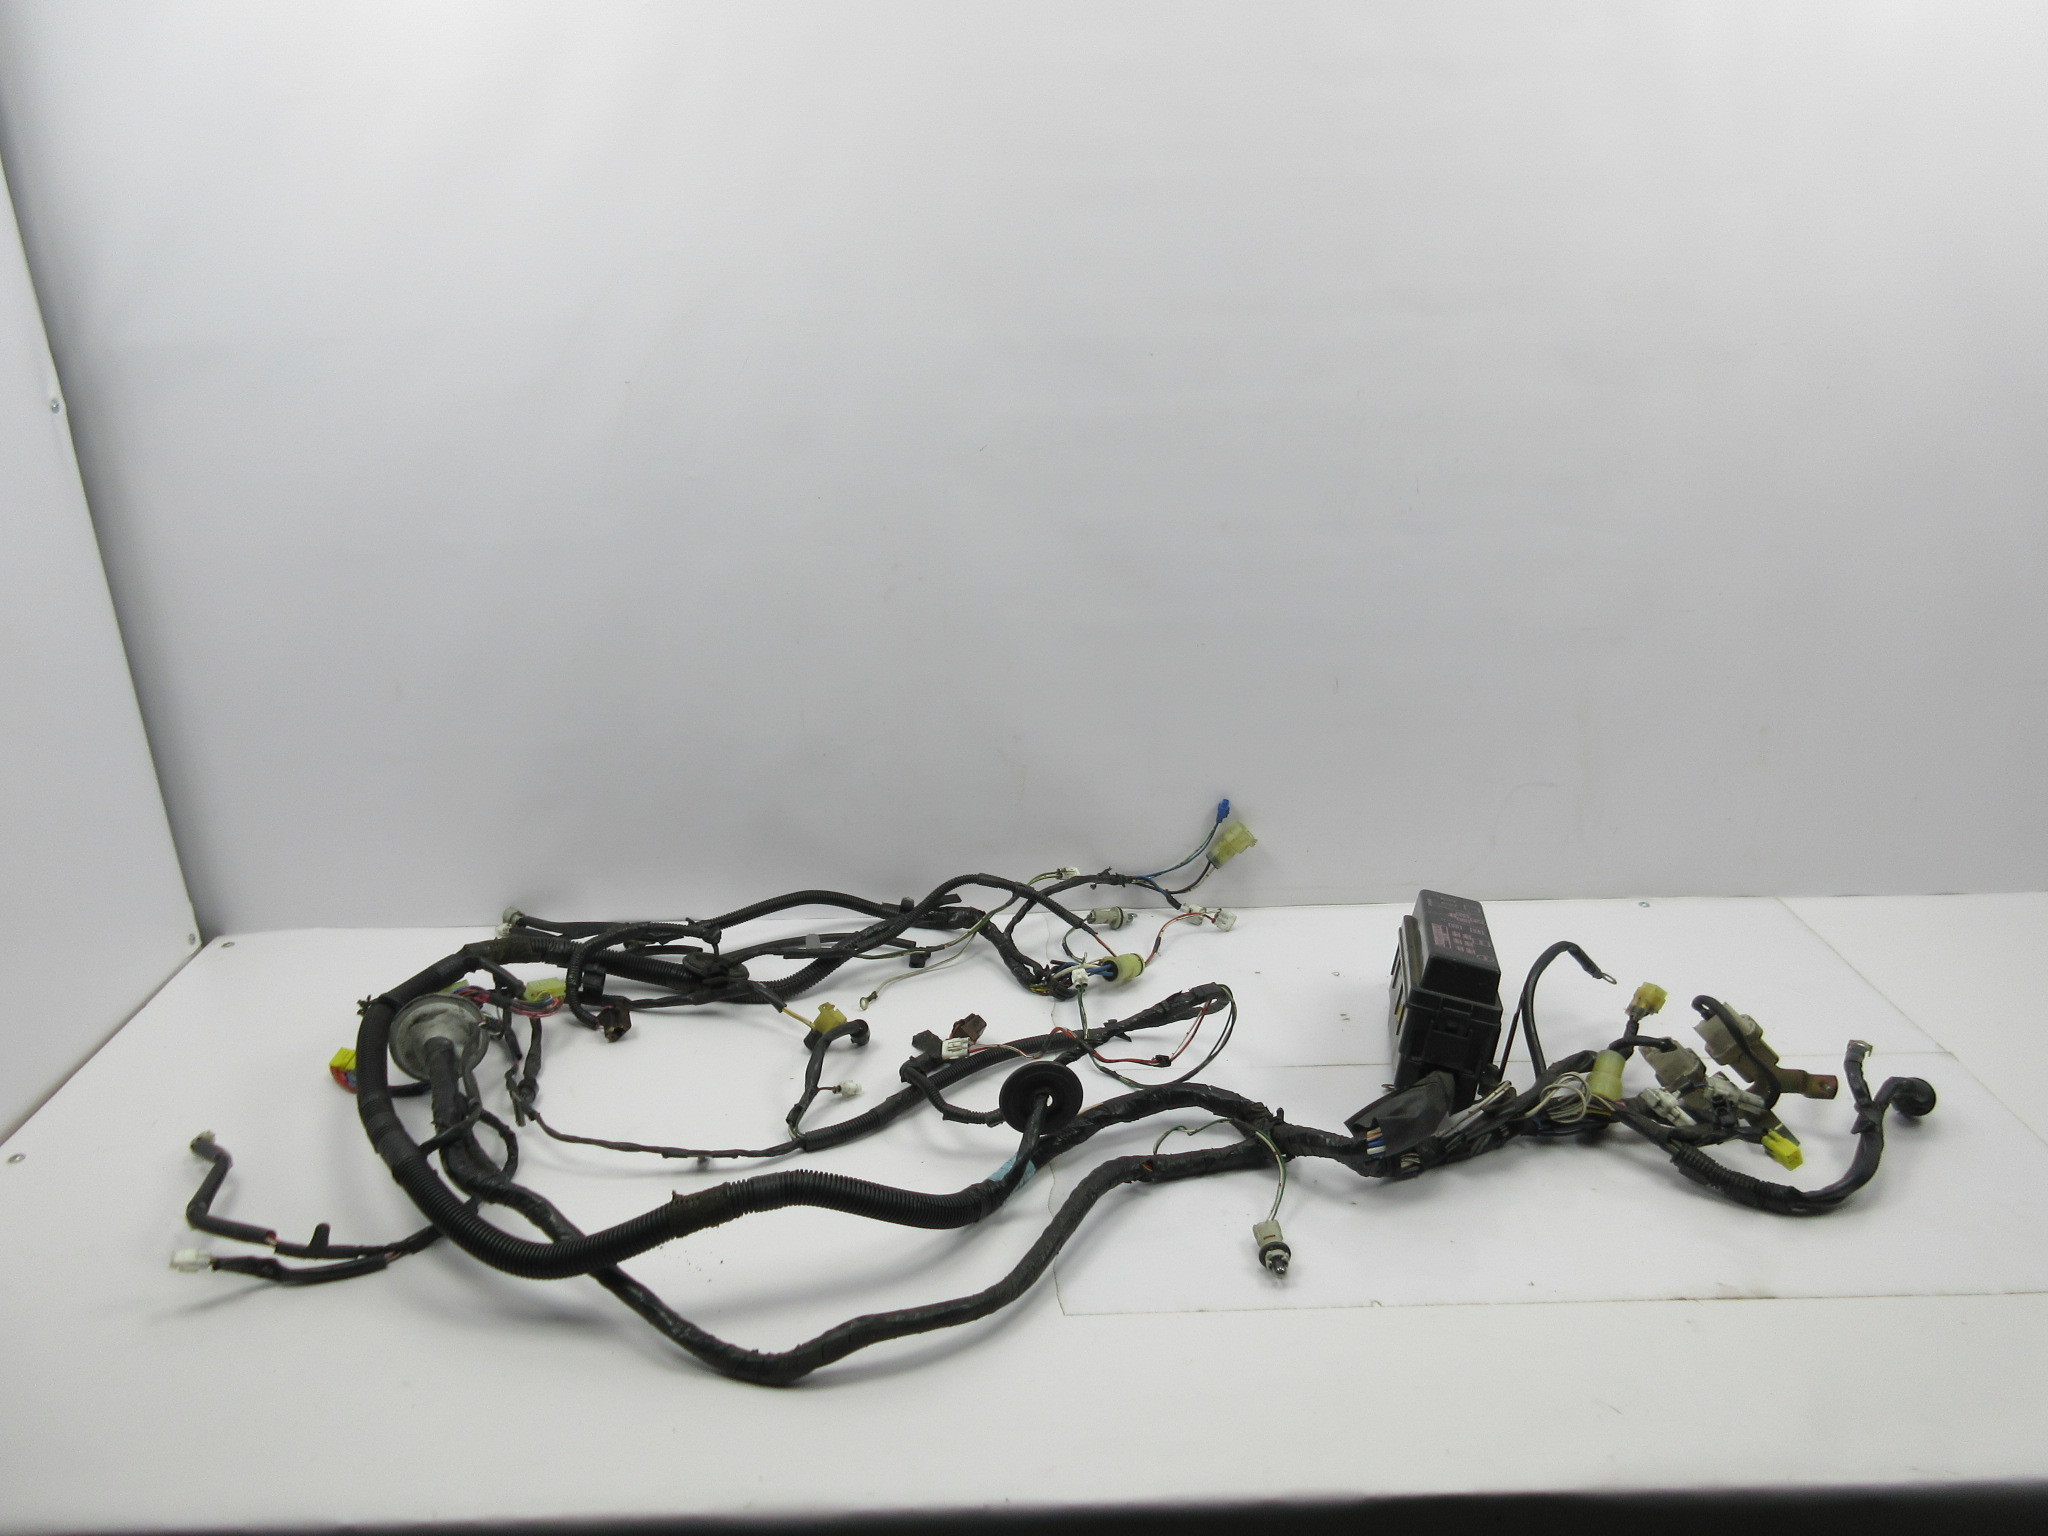 [WLLP_2054]   1988 Toyota Supra MK3 #1042 Engine Bay Wire Wiring Harness Relay Box  Headlights | PK Auto Parts Inc. | 1988 Toyota Wiring Harness |  | PK Auto Parts Inc.